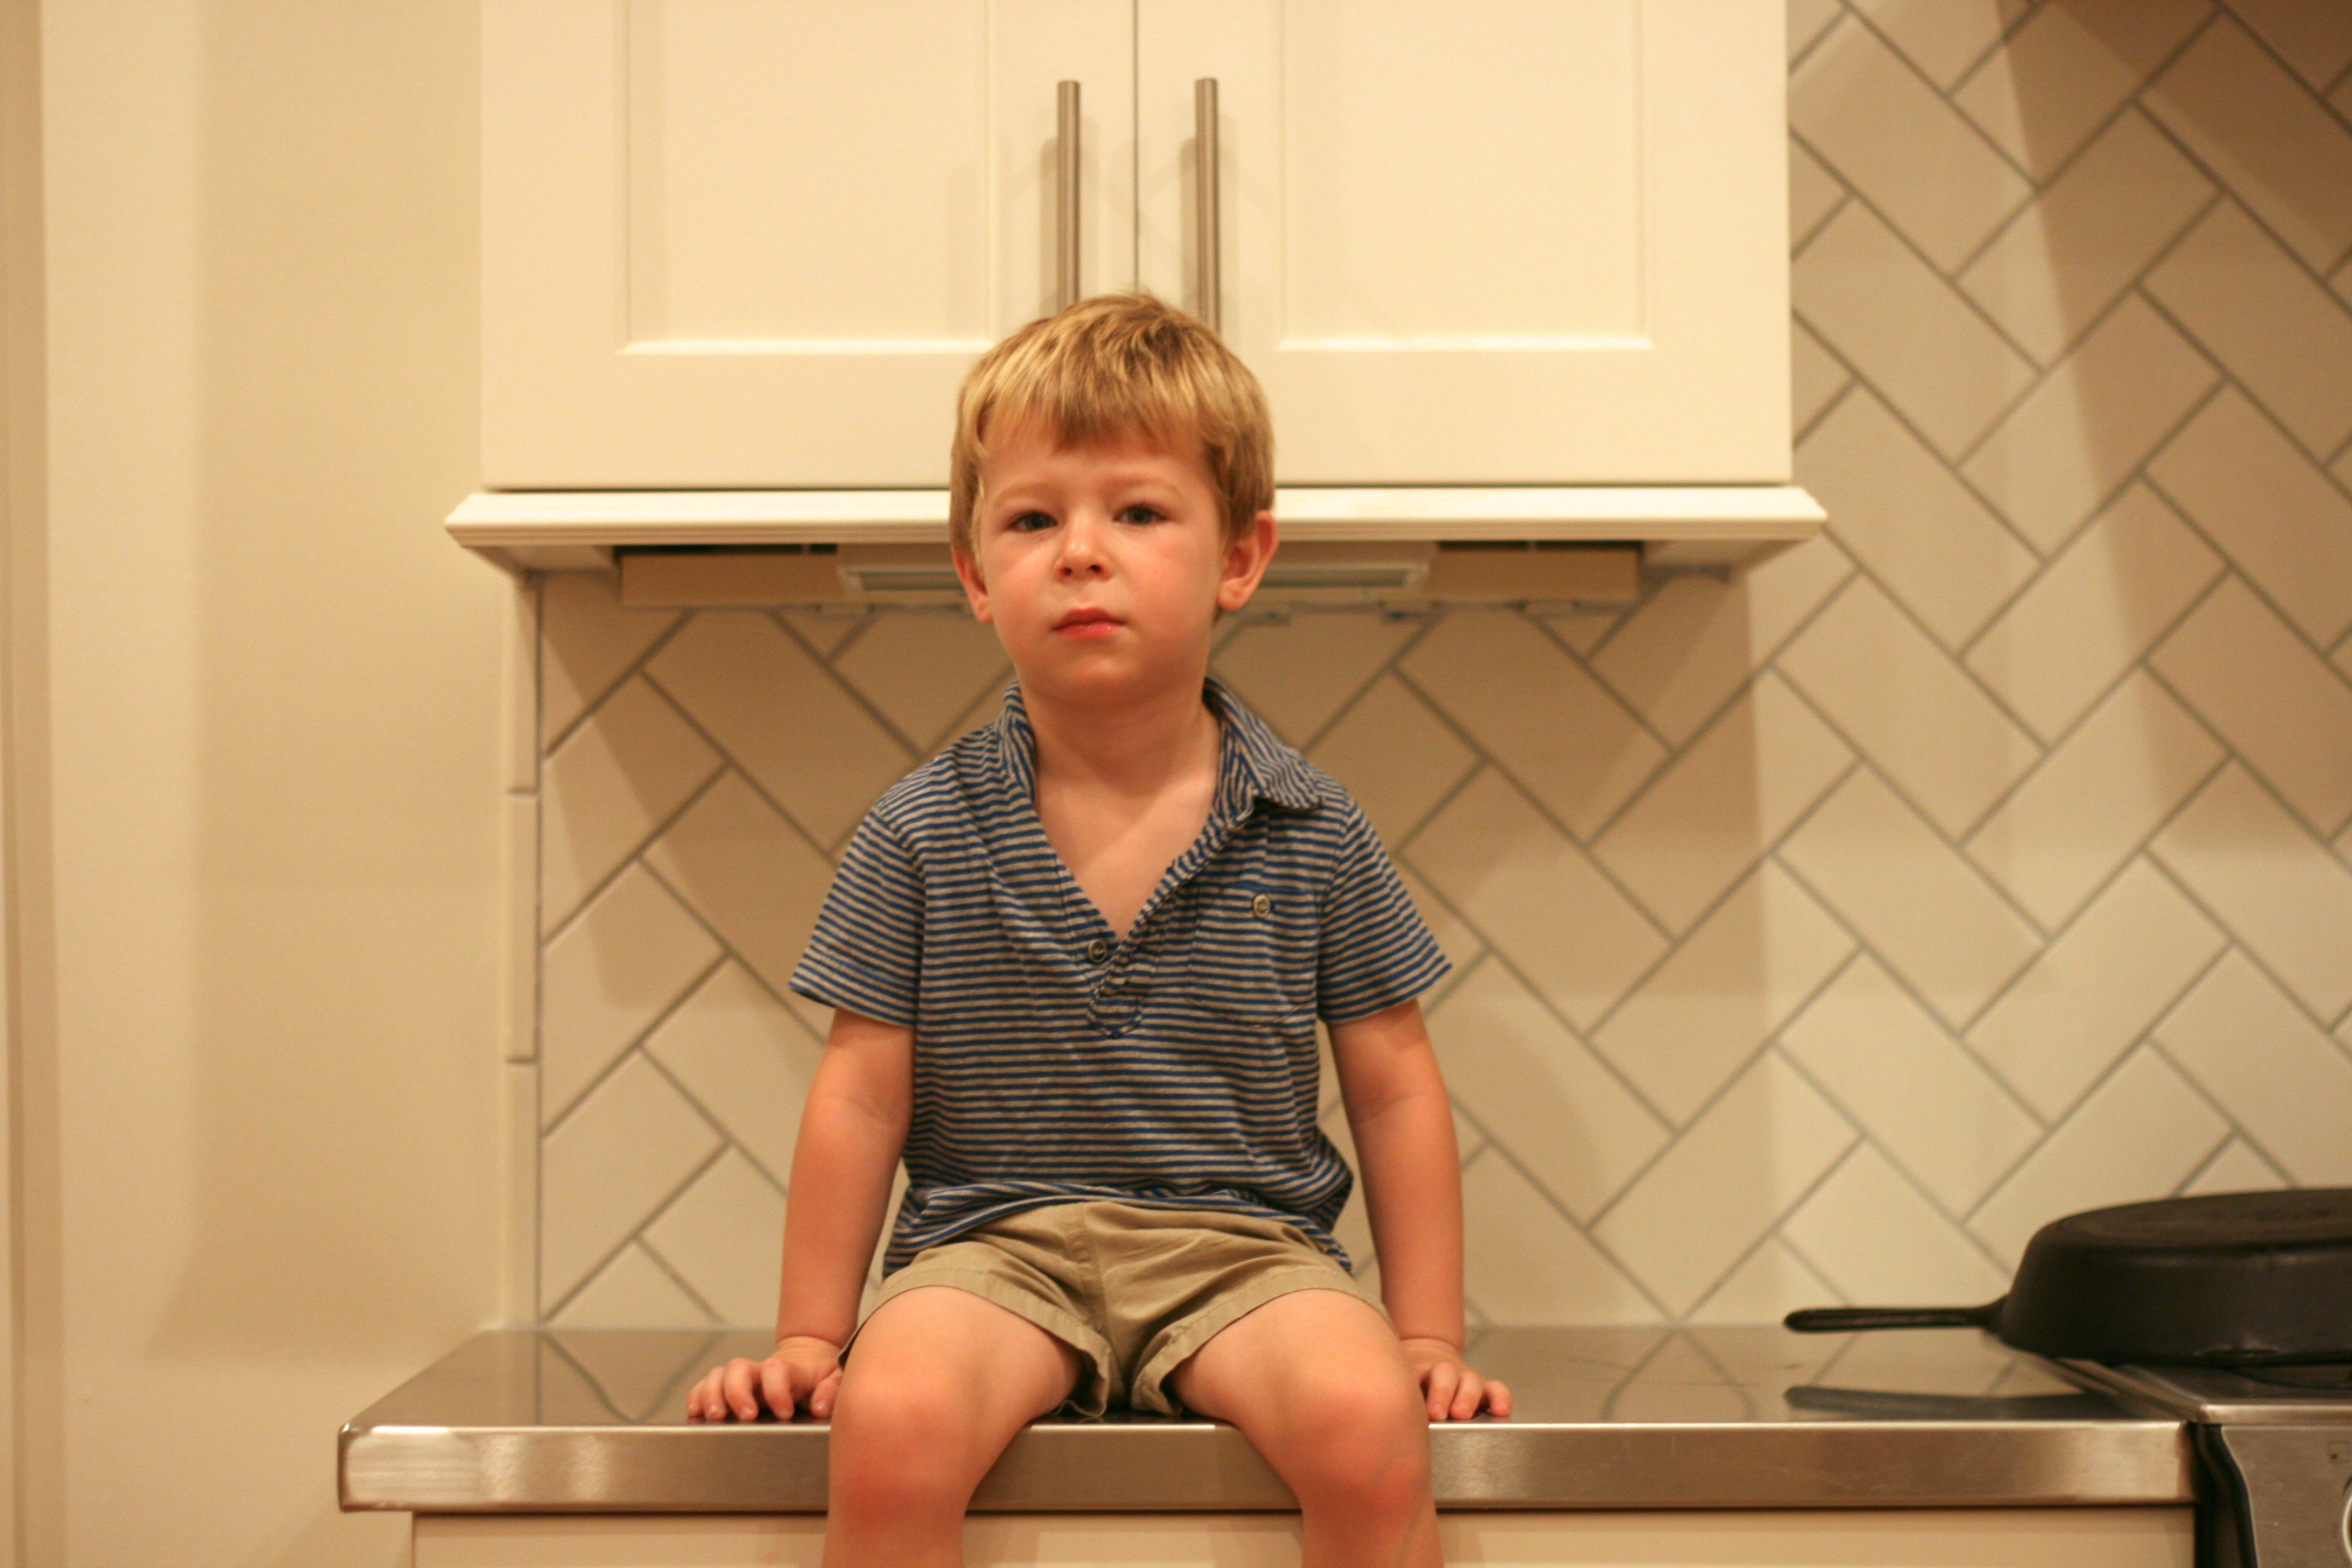 Taller, faster, stronger: Little boys love hierarchies | Growing ...